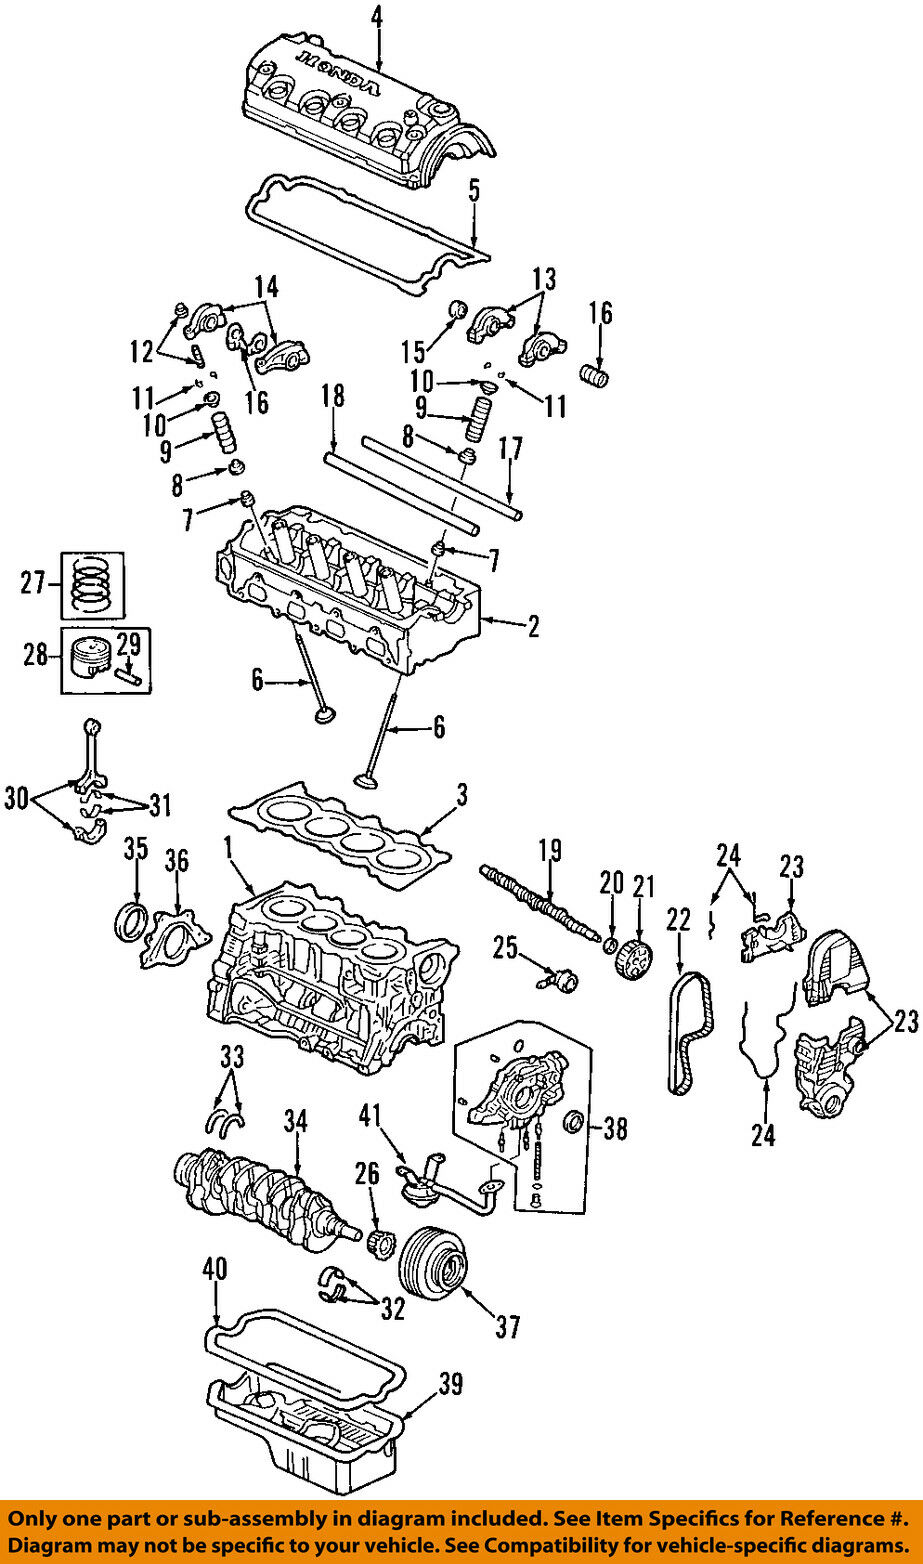 1996 Honda Civic Cylinder Head Diagram Product Wiring Diagrams 2000 Transmission Services Oem 96 00 Engine Gasket 12251p2j004 Rh Picclick Com 03 Fuel Injection Shifter